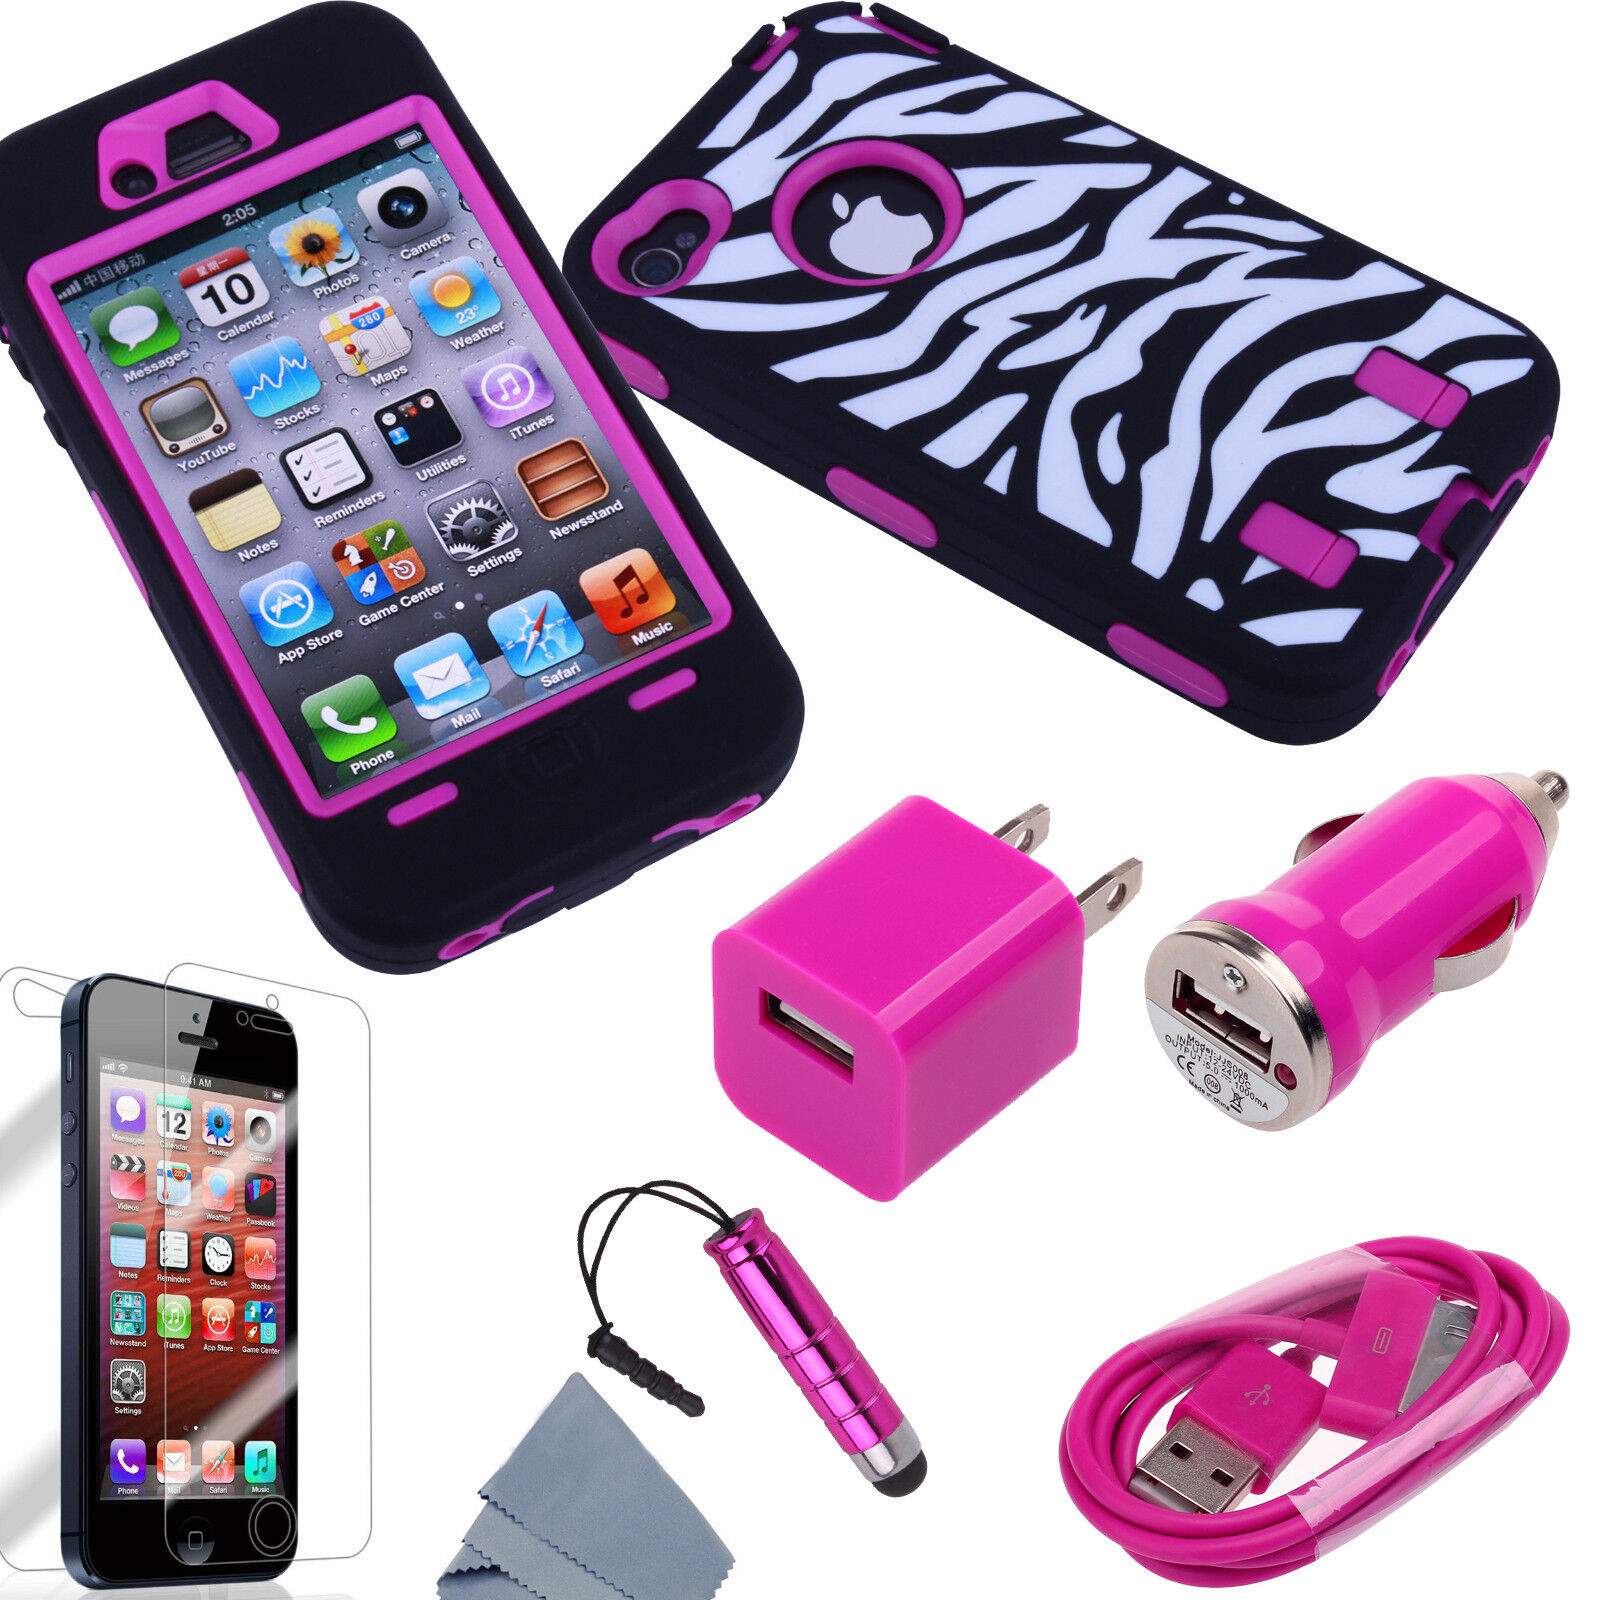 Pen+Rose Rugged Matte Rubber Hard Case Cover For iPhone 4S 4G w/ Screen Protect